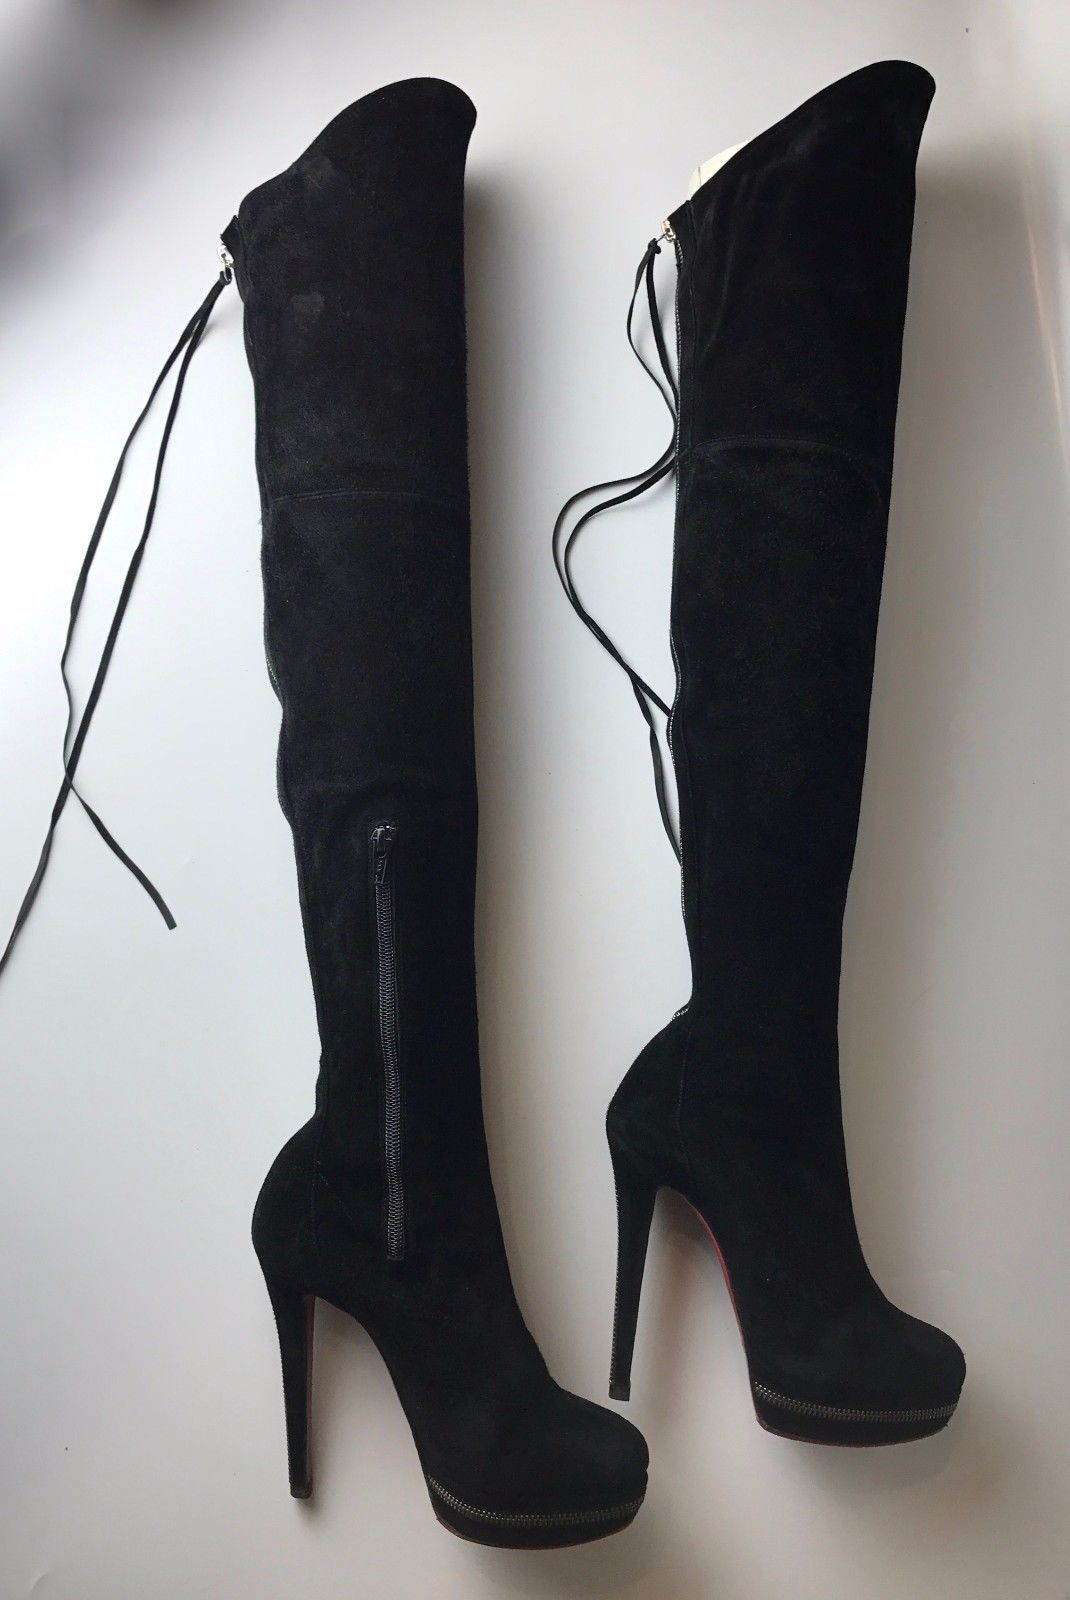 b50184598dc1 ... italy christian louboutin unique 140 black suede thigh high boots euro  36 us 6 b9d8b 00000